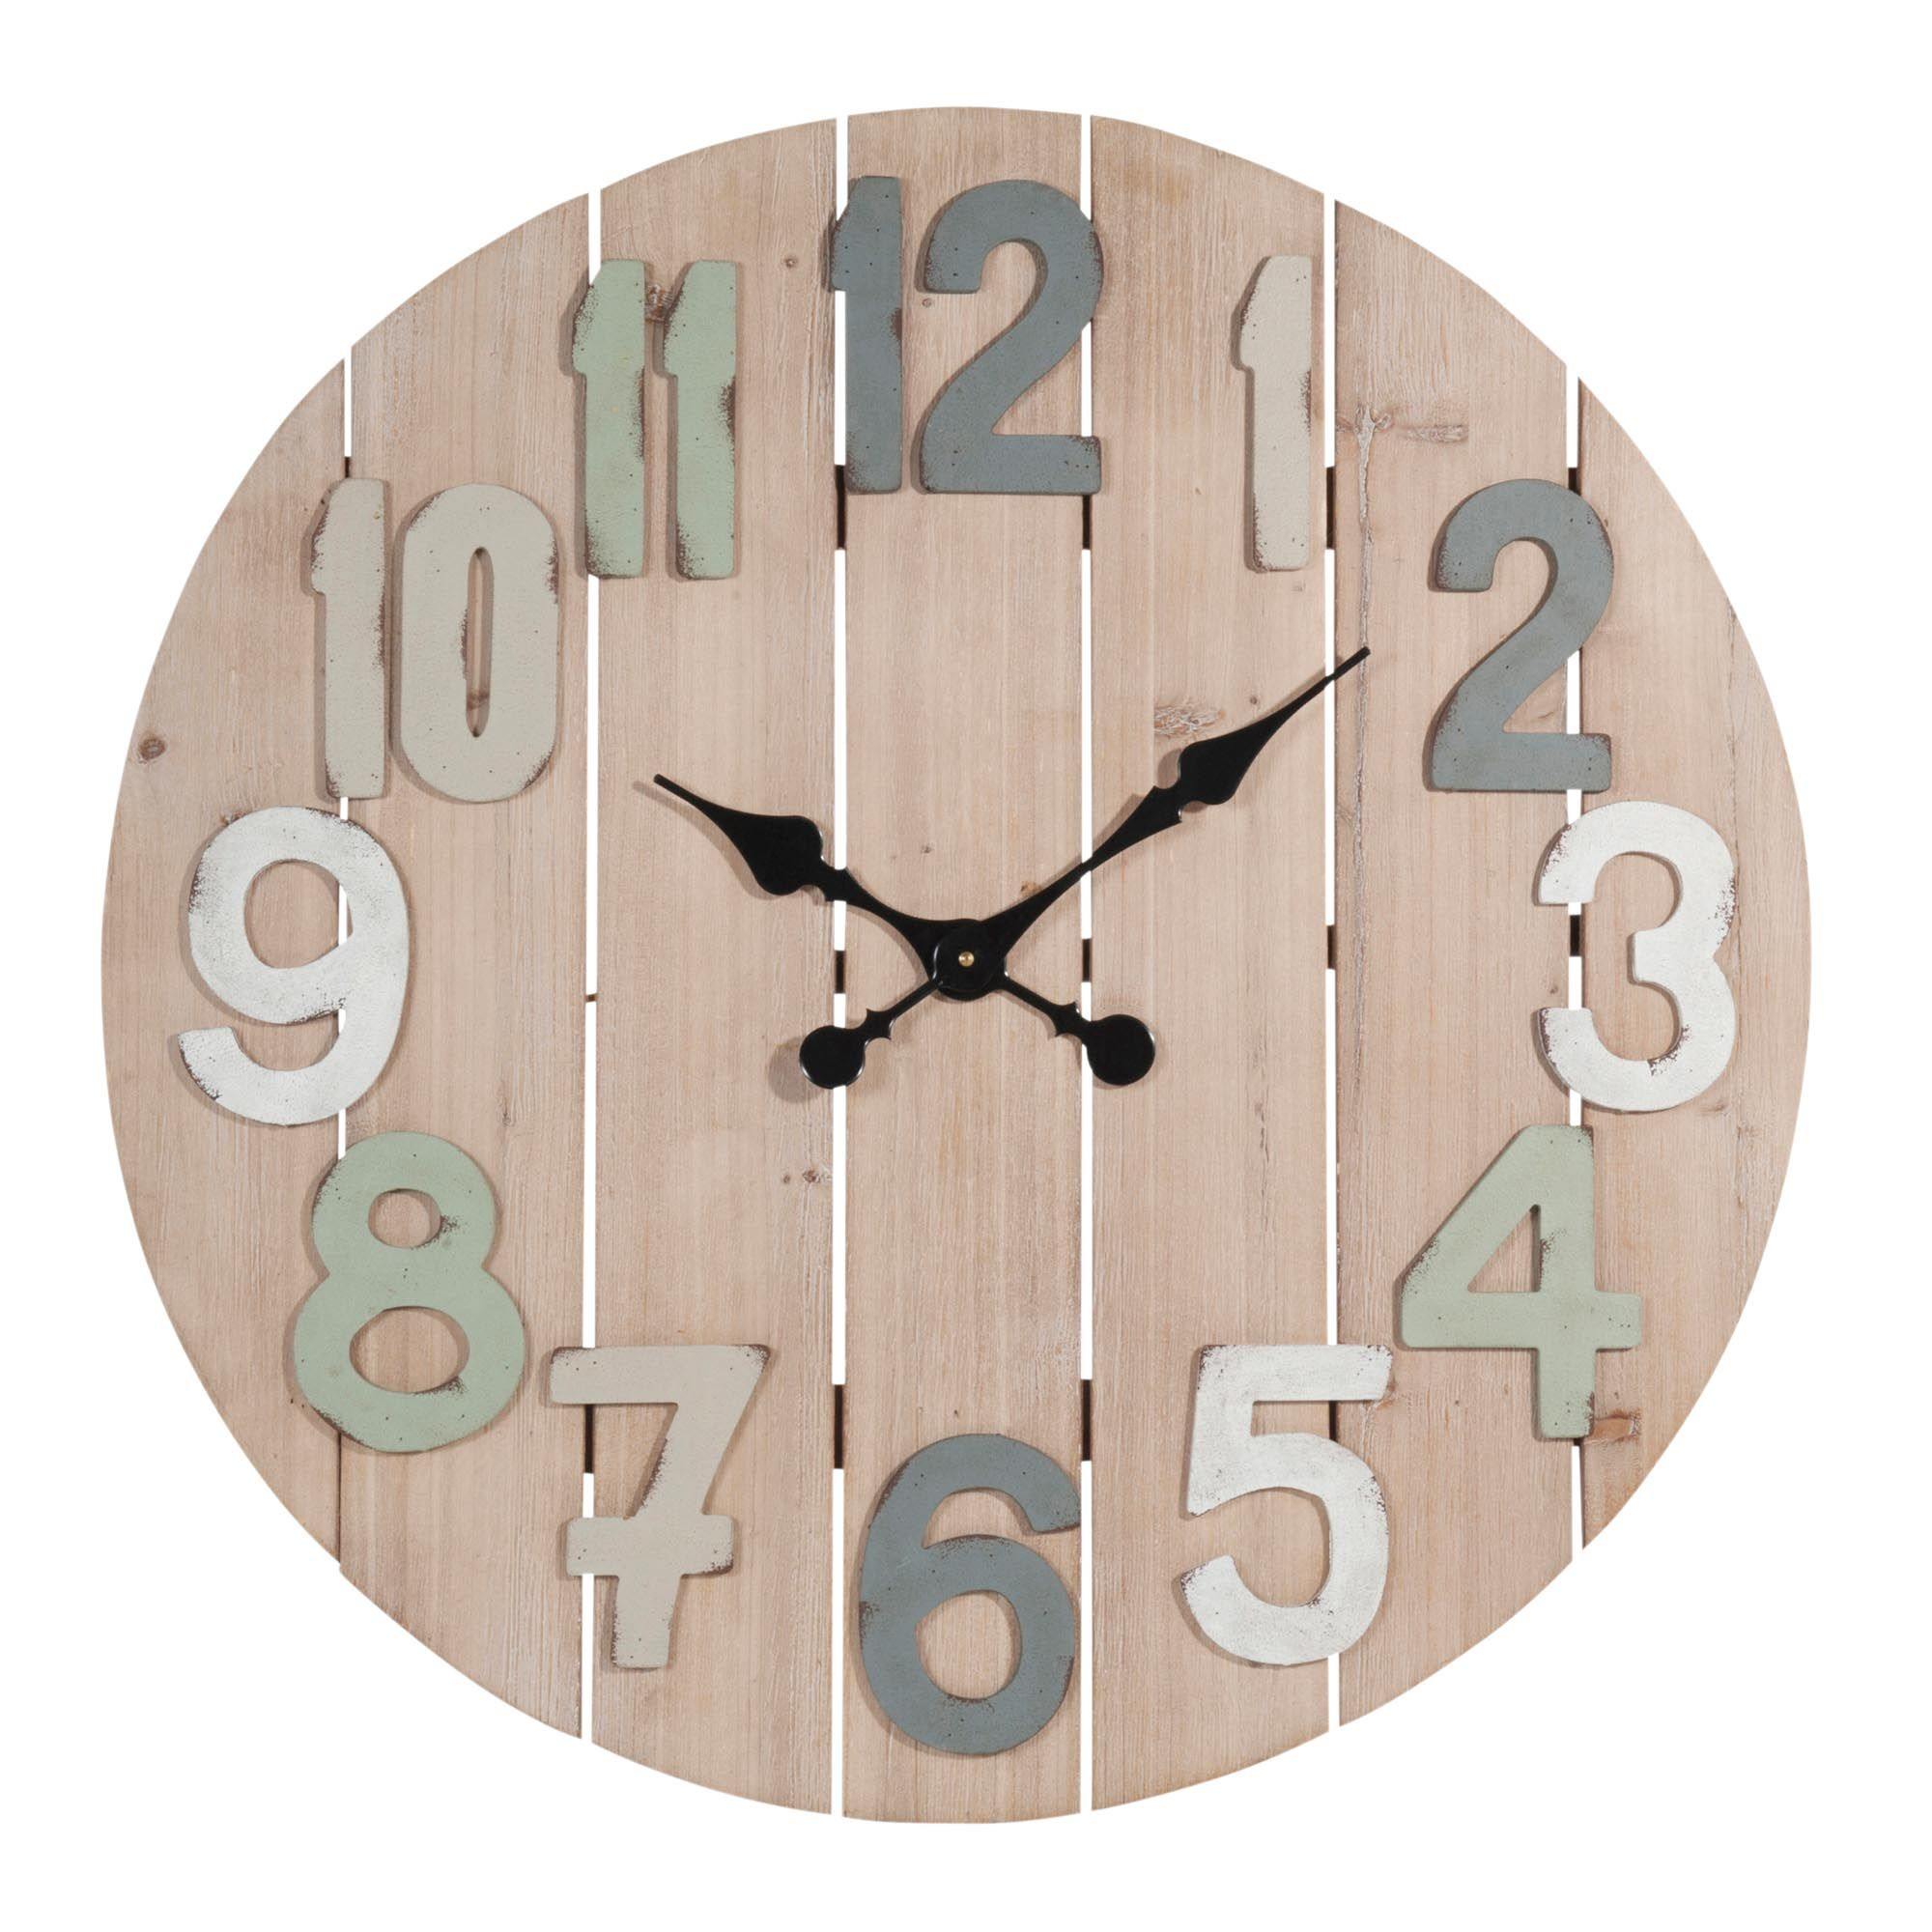 horloge lattes en bois d 70 cm montroi maisons du monde home sweet home en 2019 pinterest. Black Bedroom Furniture Sets. Home Design Ideas